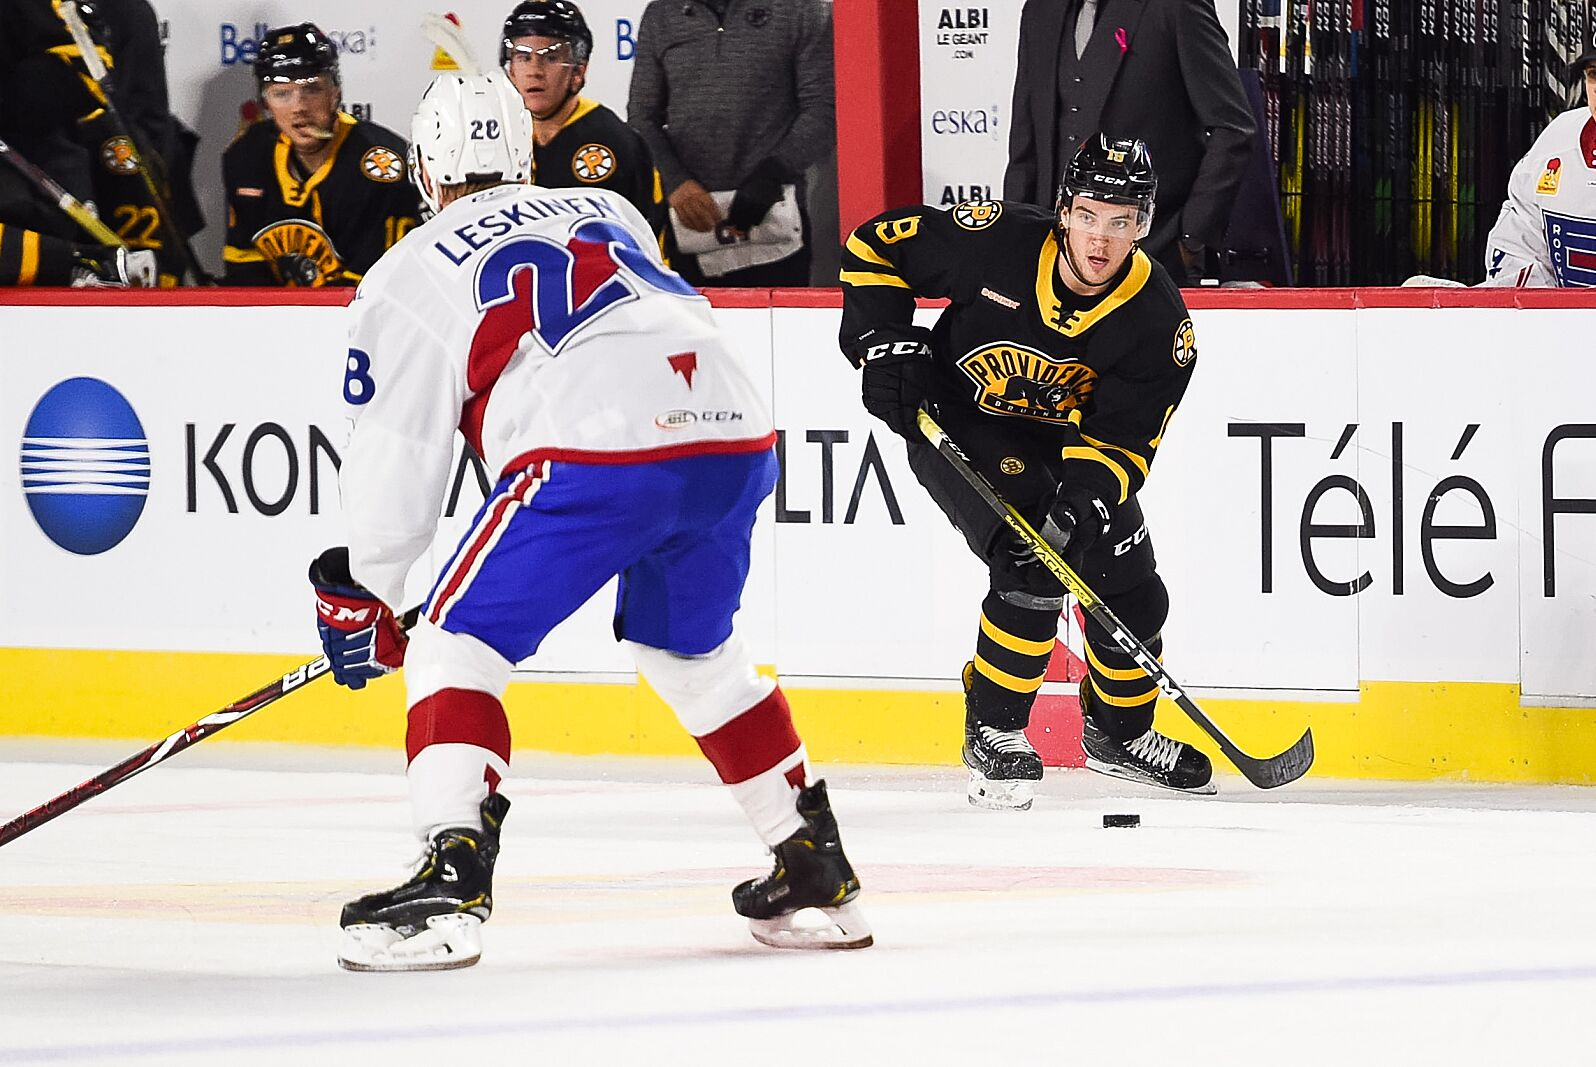 Boston Bruins: Friday on the farm with the Providence Bruins